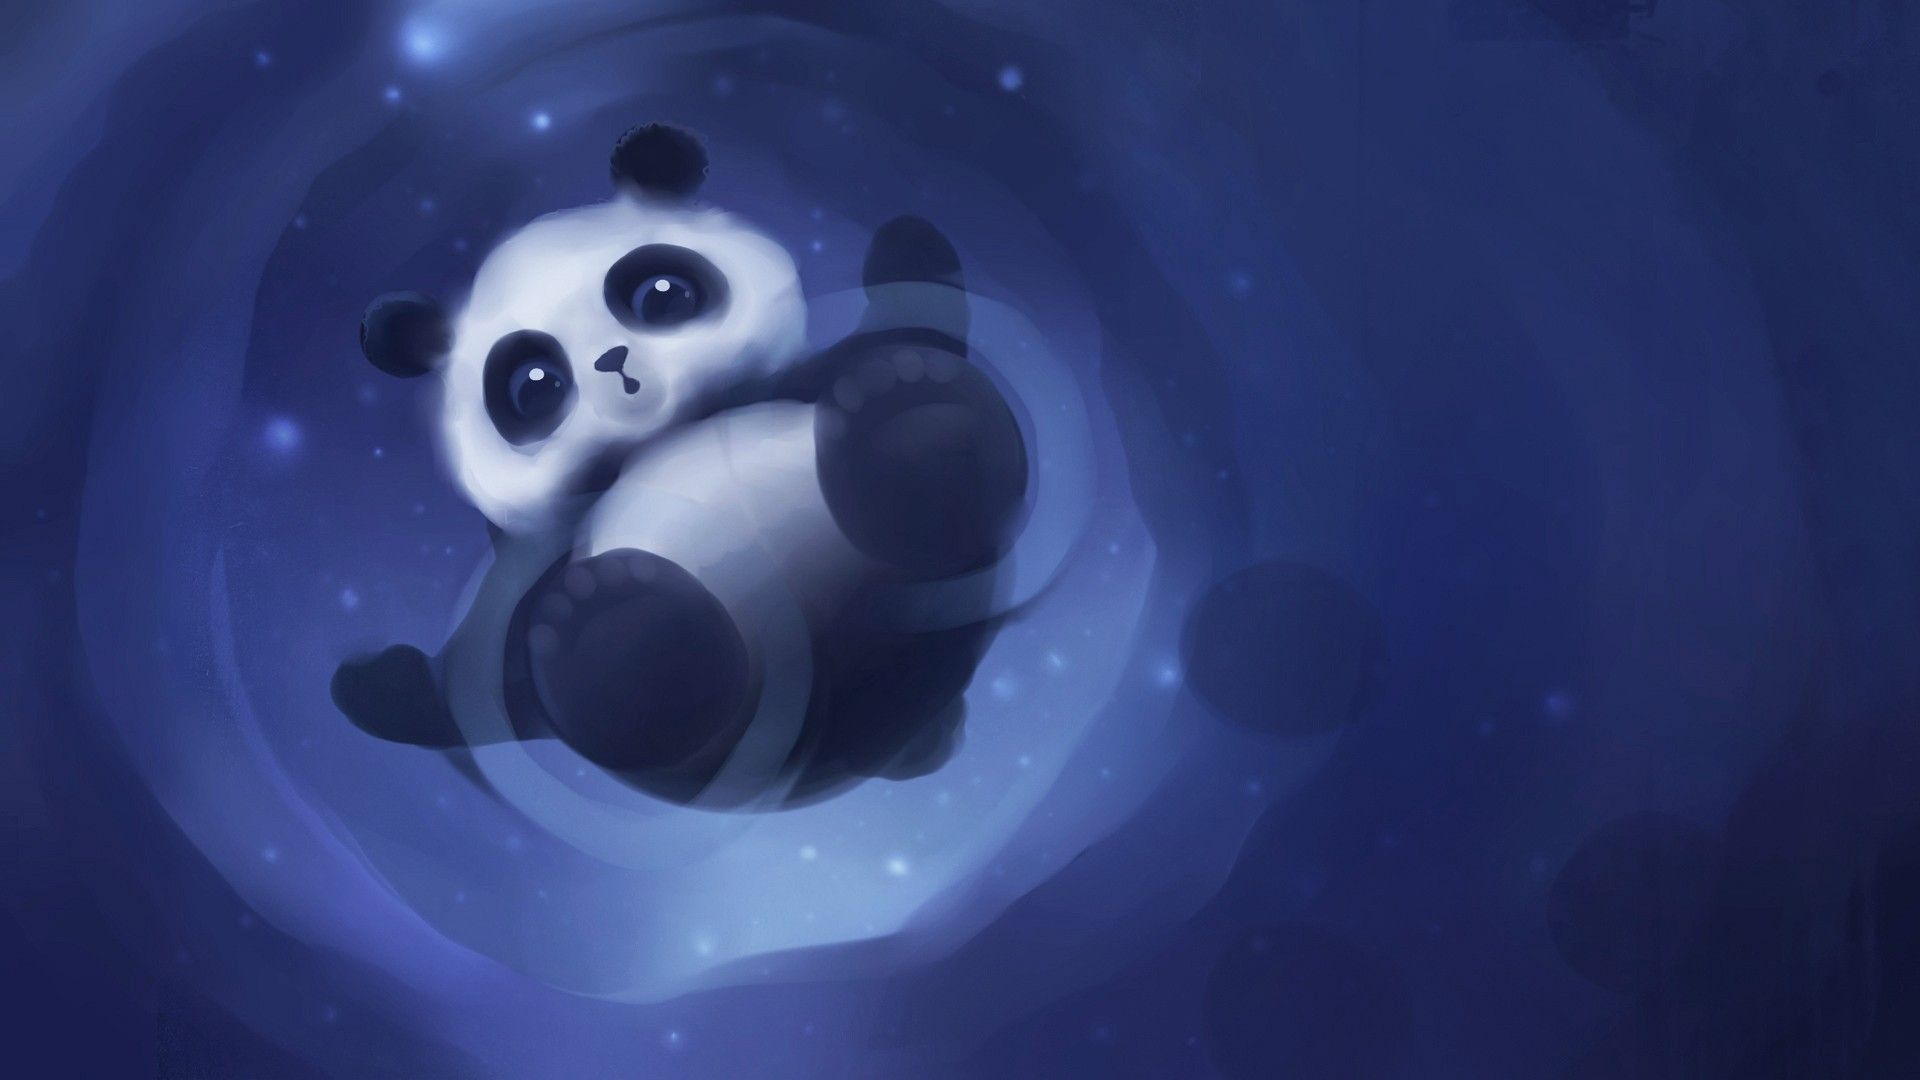 Live Wallpaper Hd Cute Panda Wallpaper Panda Wallpapers Panda Art